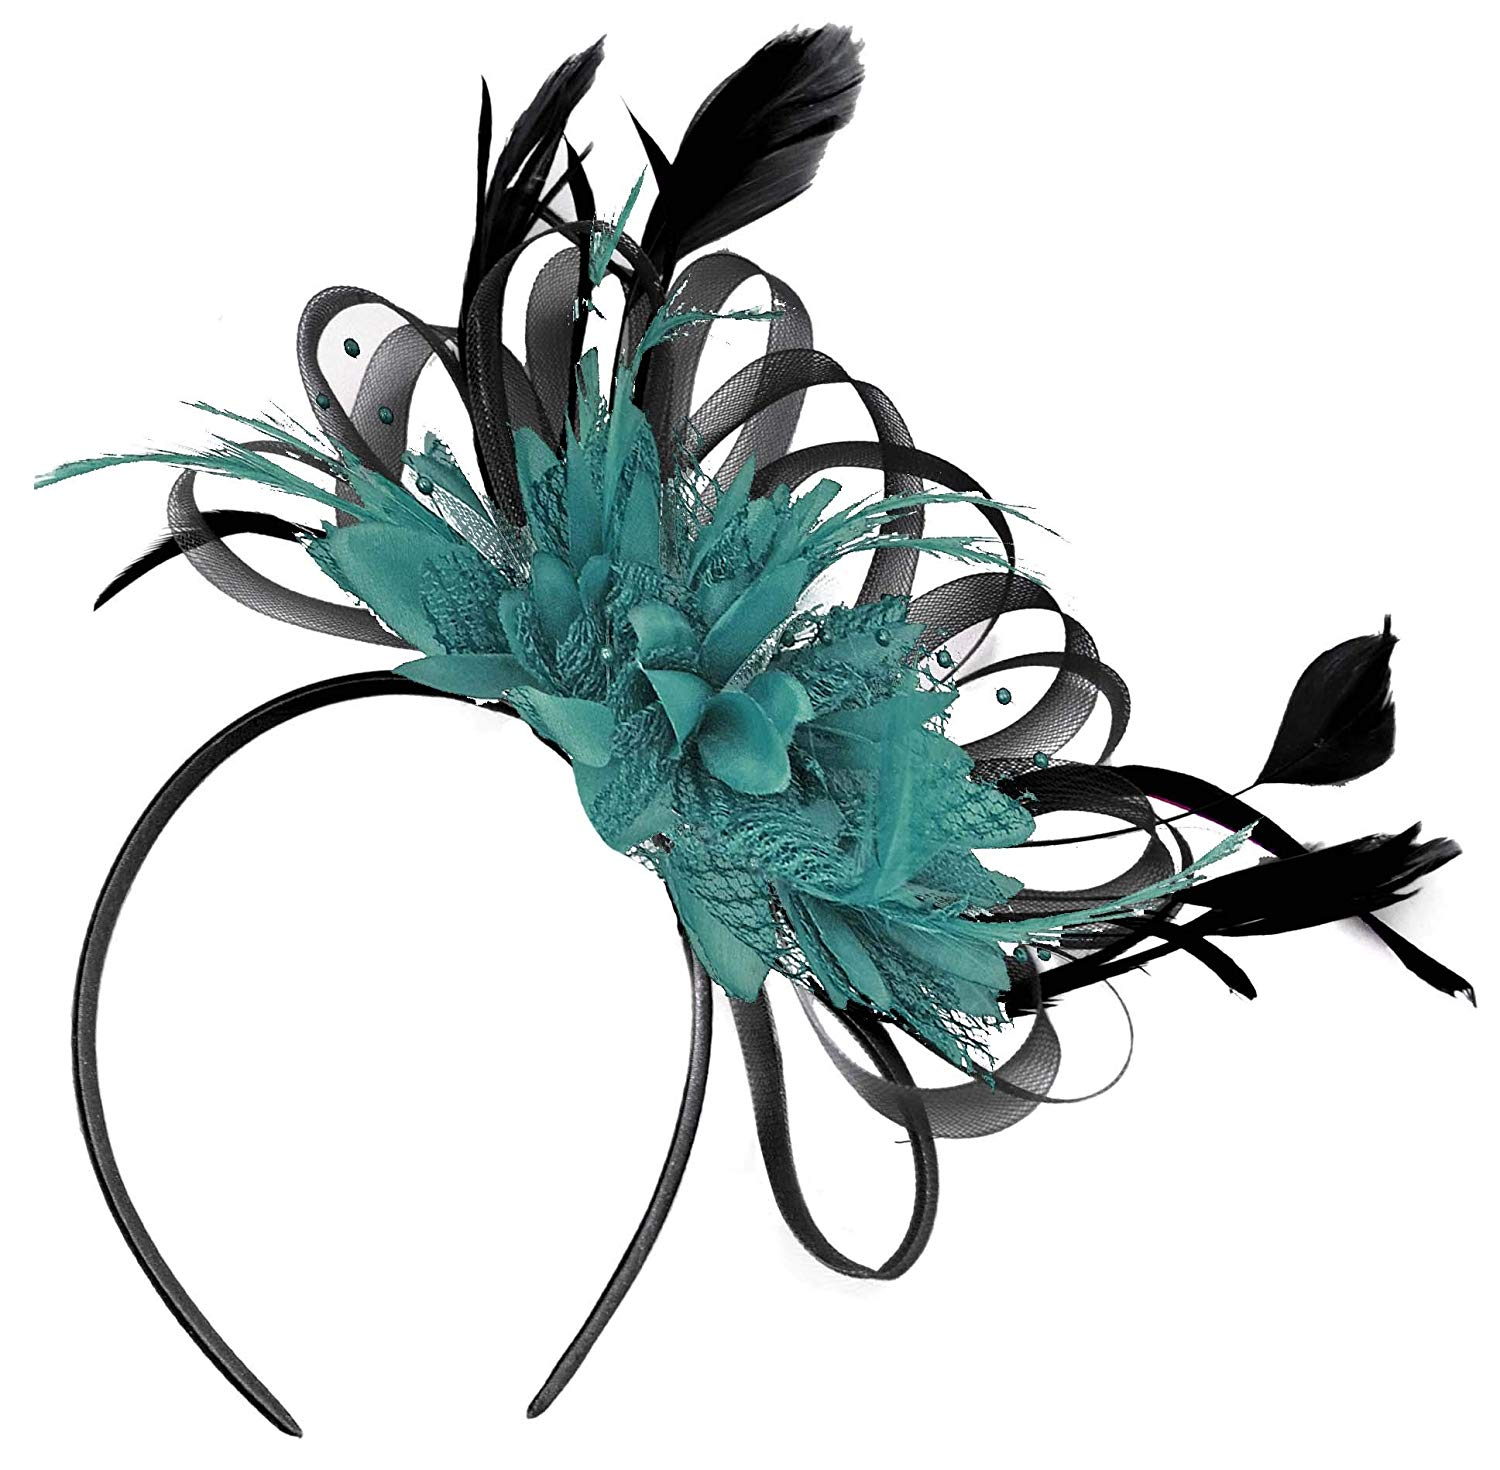 96fd63abd40 Get Quotations · Black and Teal Feather Hair Fascinator Headband Wedding  Royal Ascot Races